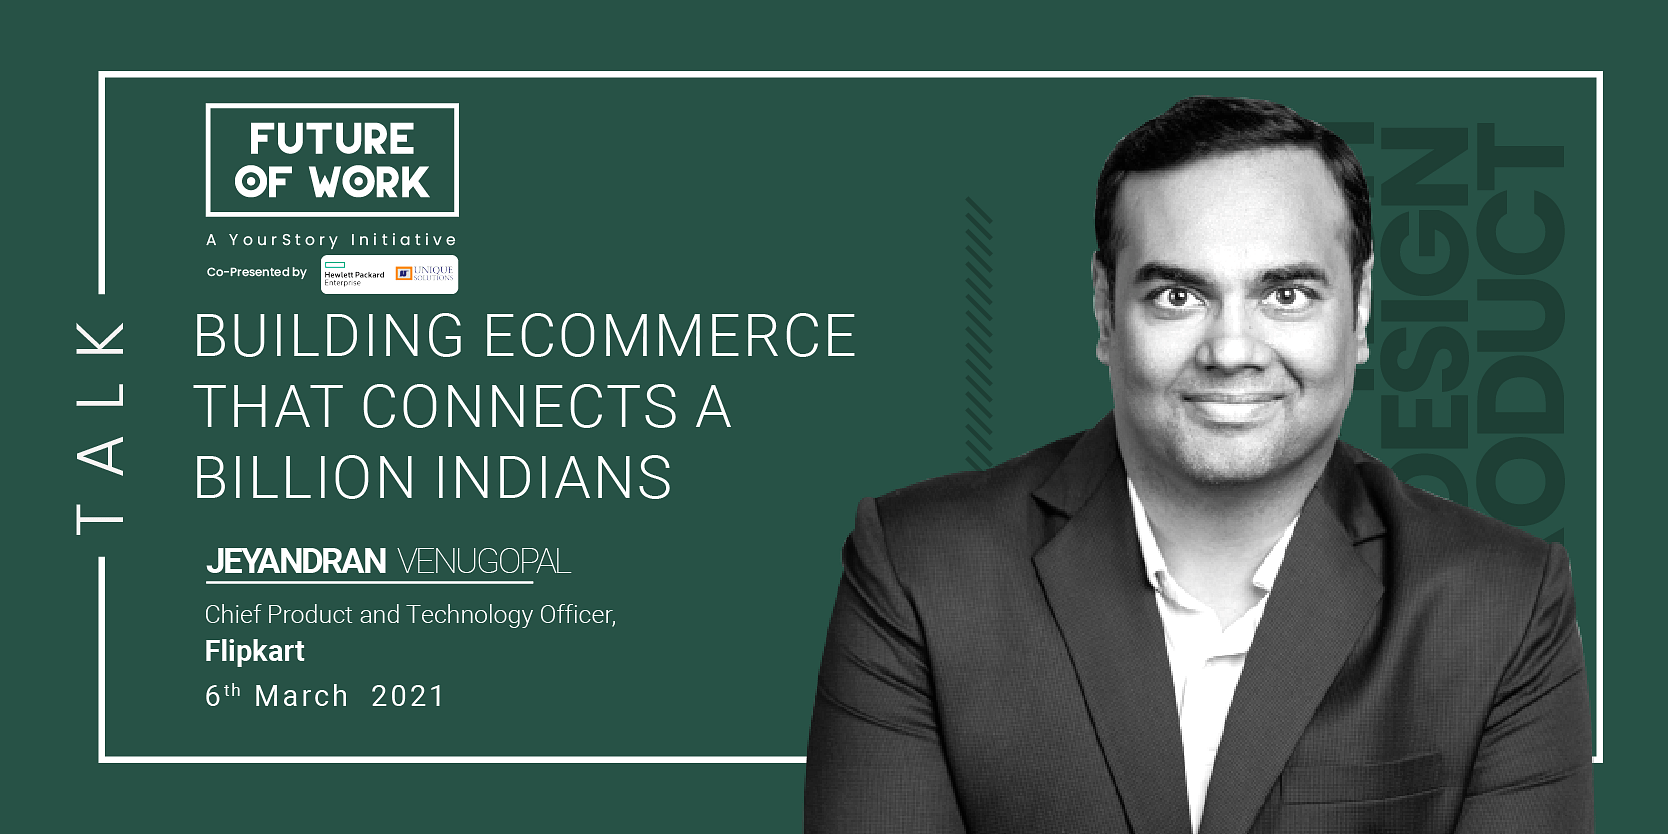 Flipkart to leverage new-age tech to onboard more Indians on the ecommerce platform